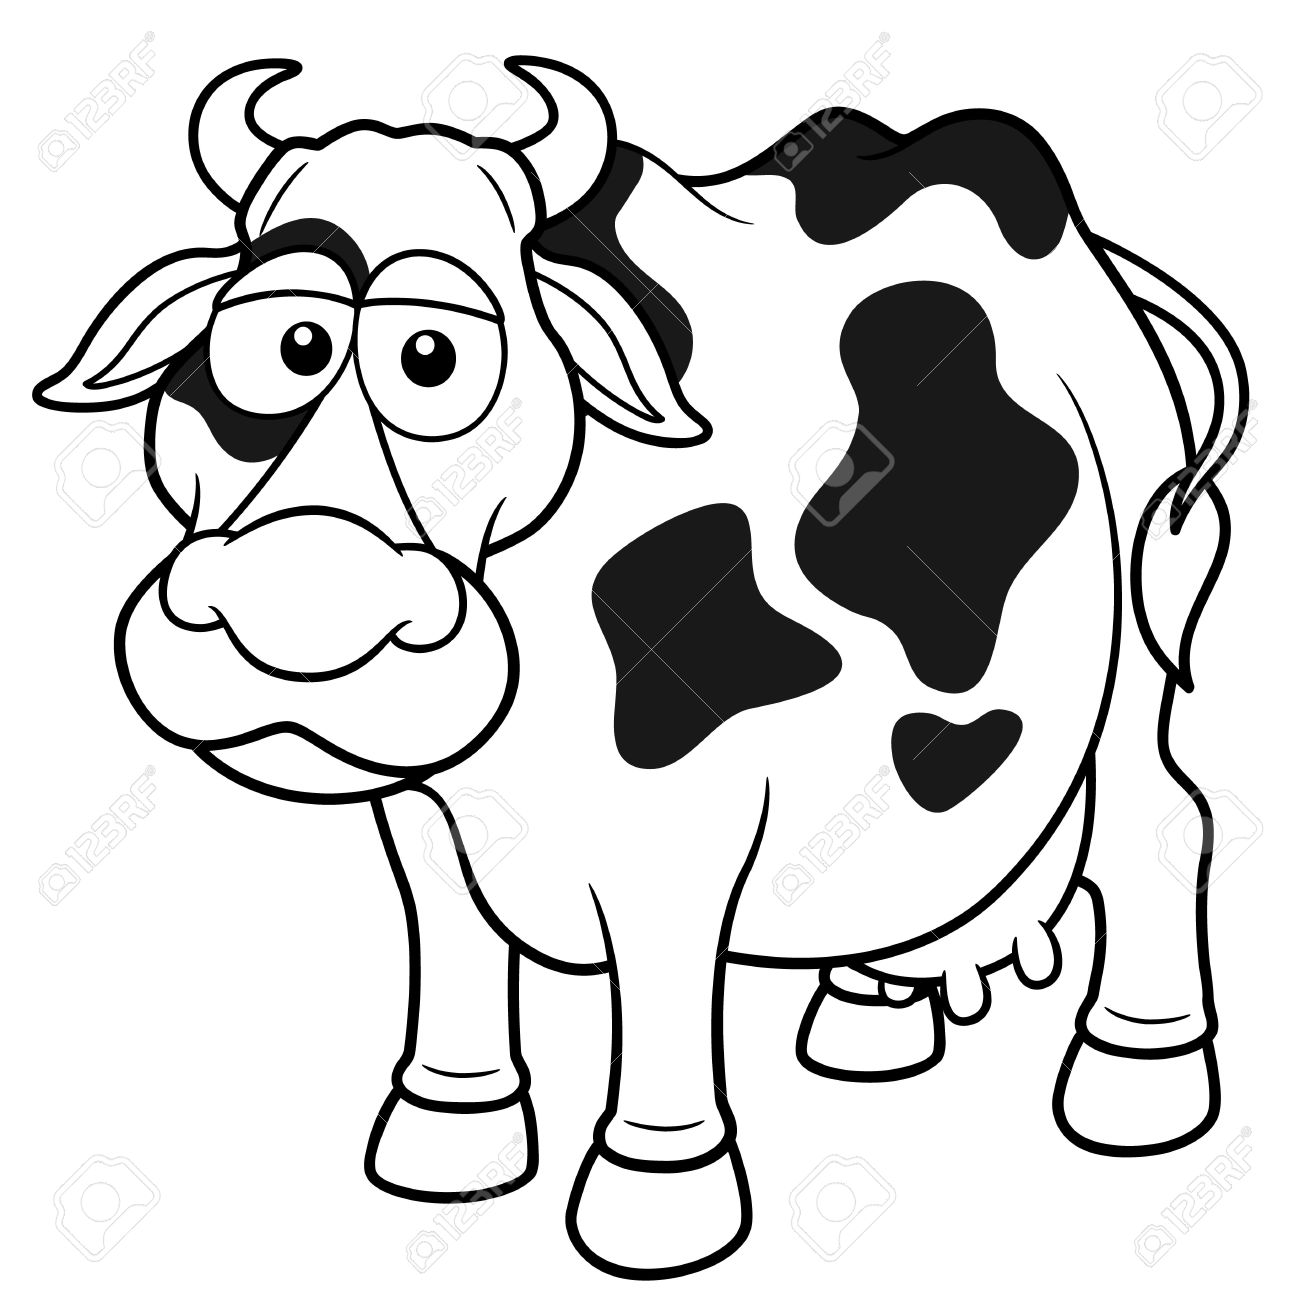 vector illustration of cow cartoon coloring book royalty free